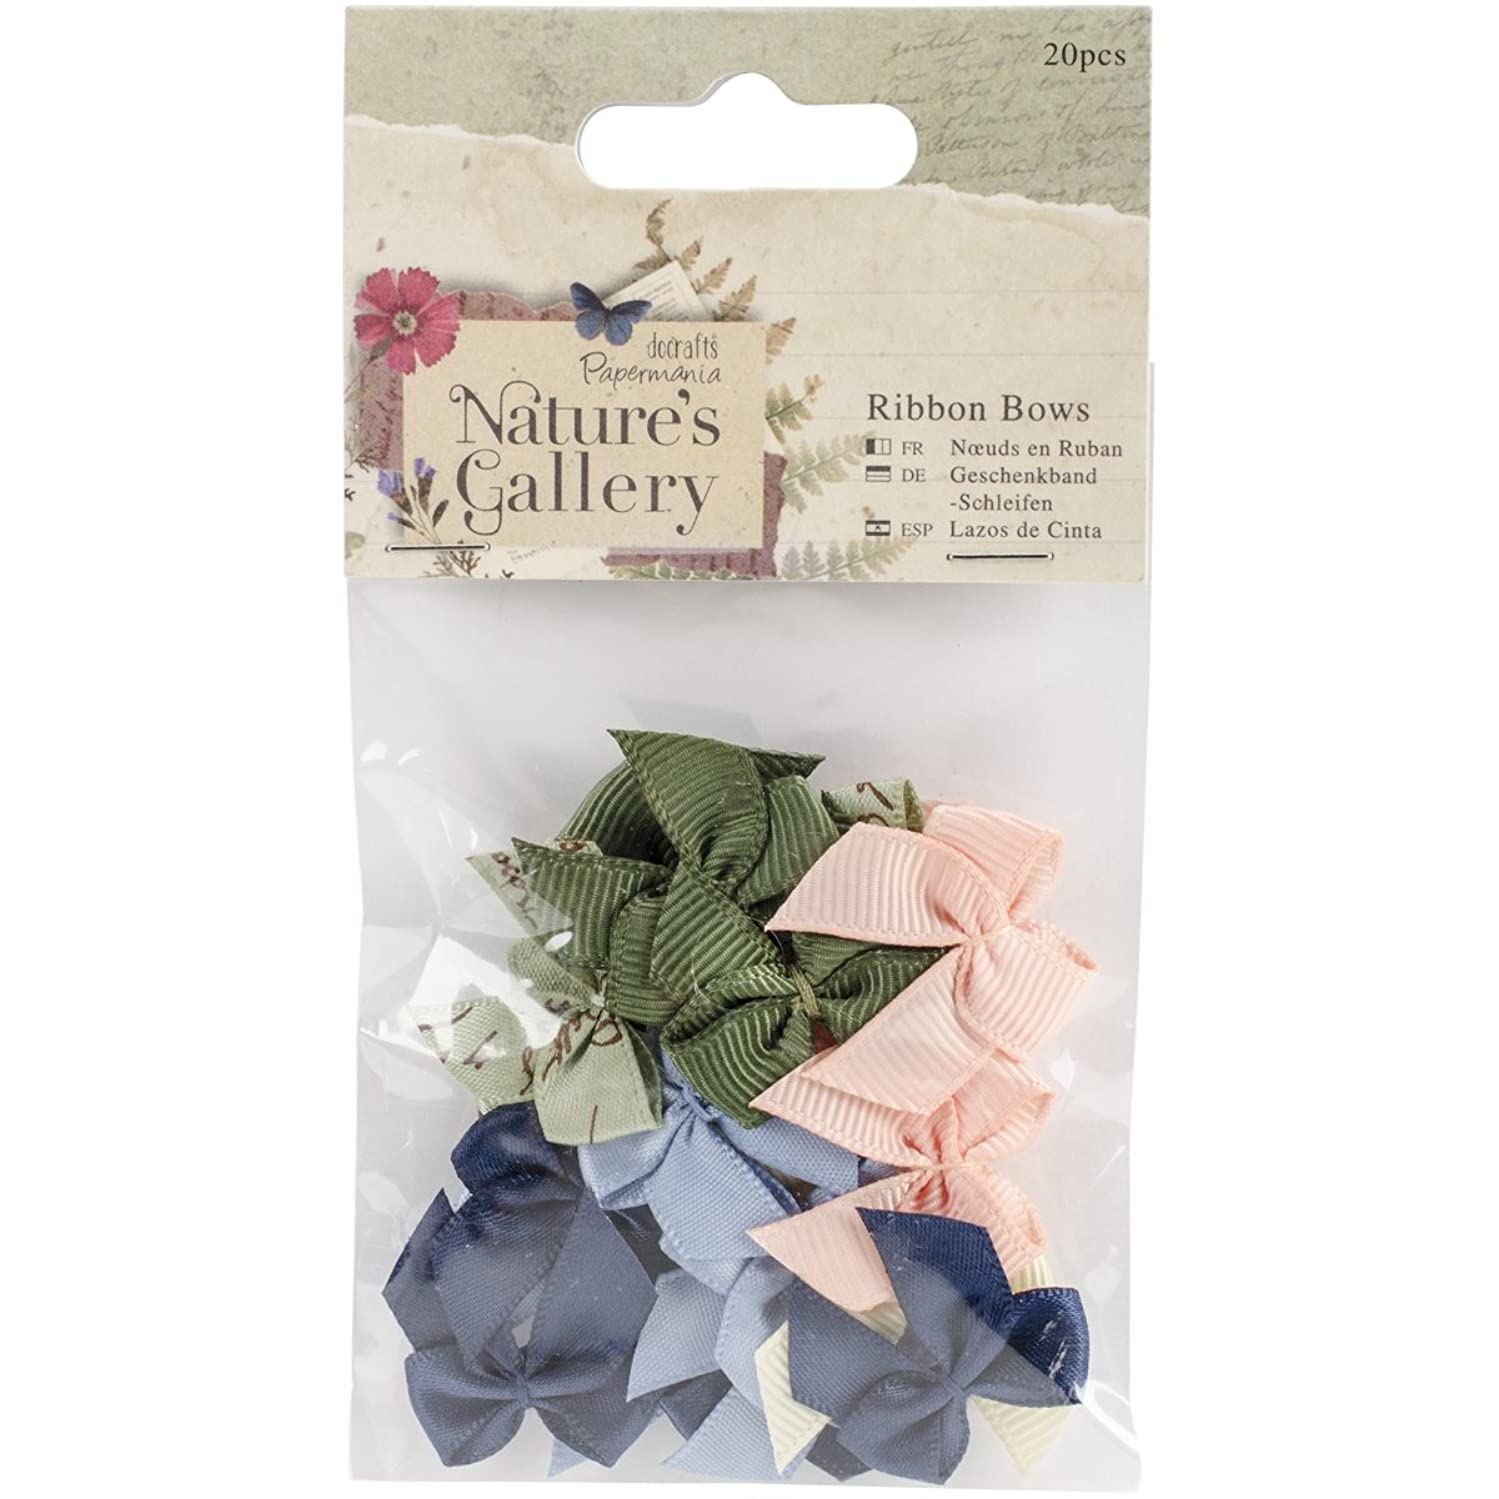 DOCrafts Papermania Nature's Gallery Ribbon Bows (20 Pack)